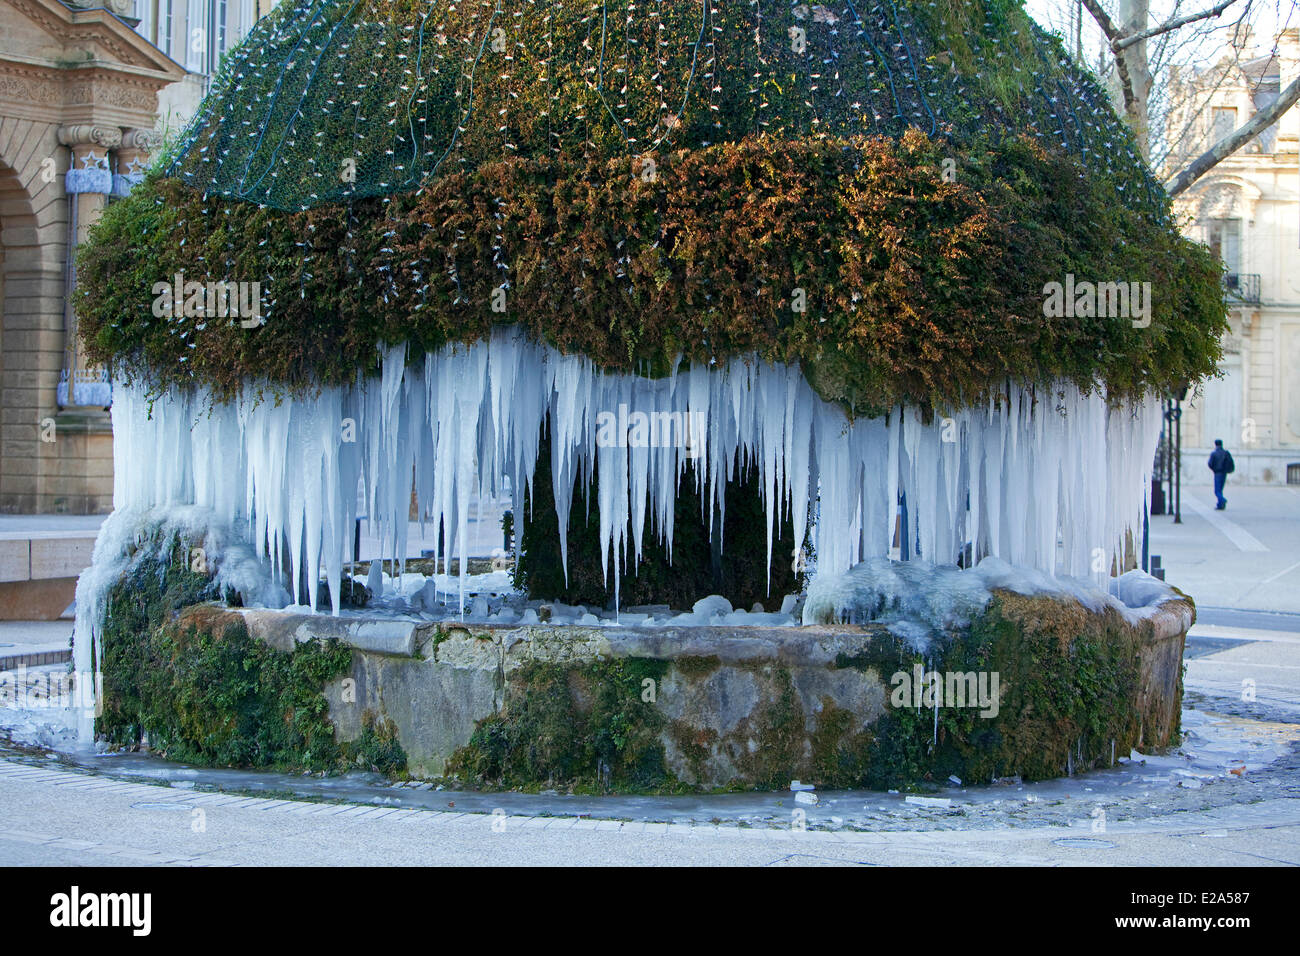 France, Bouches du Rhone, Salon de Provence, instead Crousillat, mossy fountain of the 16th century - Stock Image